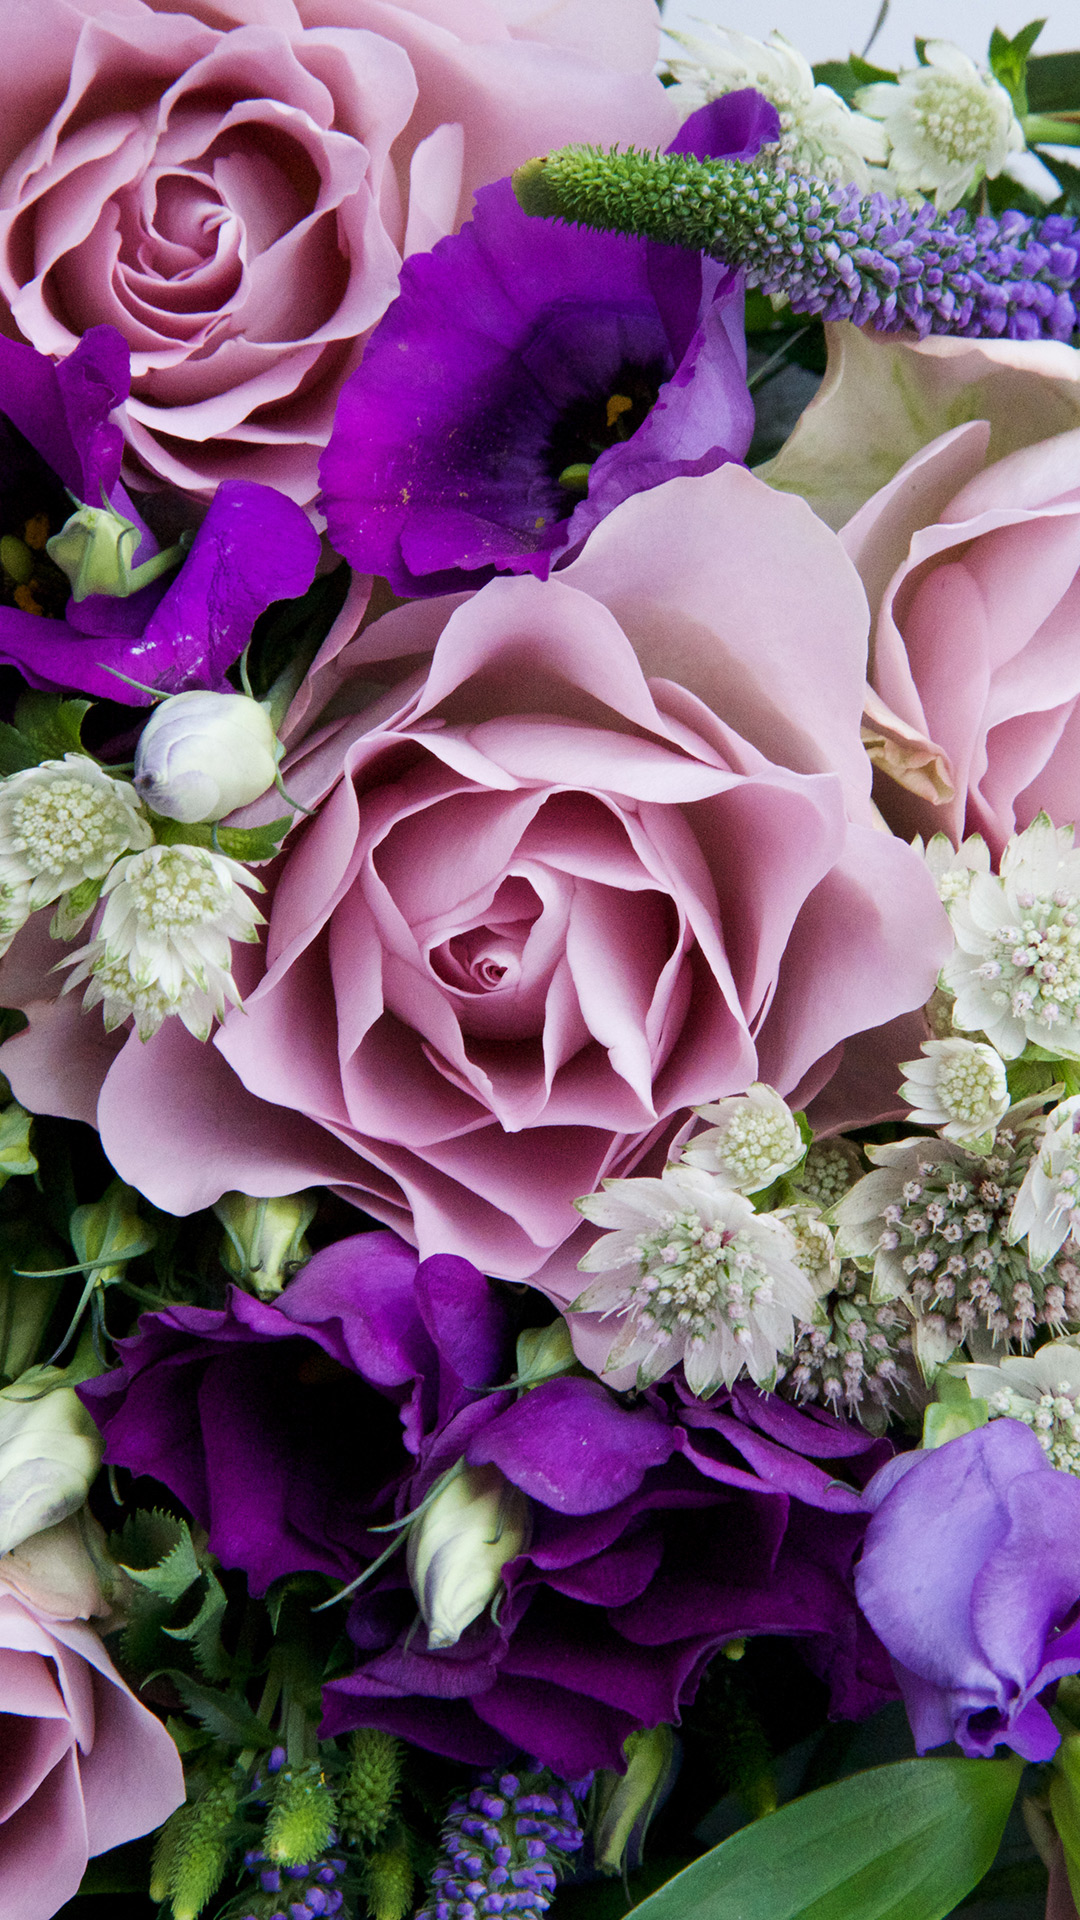 Mother S Day Flowers And Free Phone Wallpapers Featuring Debenhams Capture By Lucy Amazing free hd flower wallpapers collection. capture by lucy